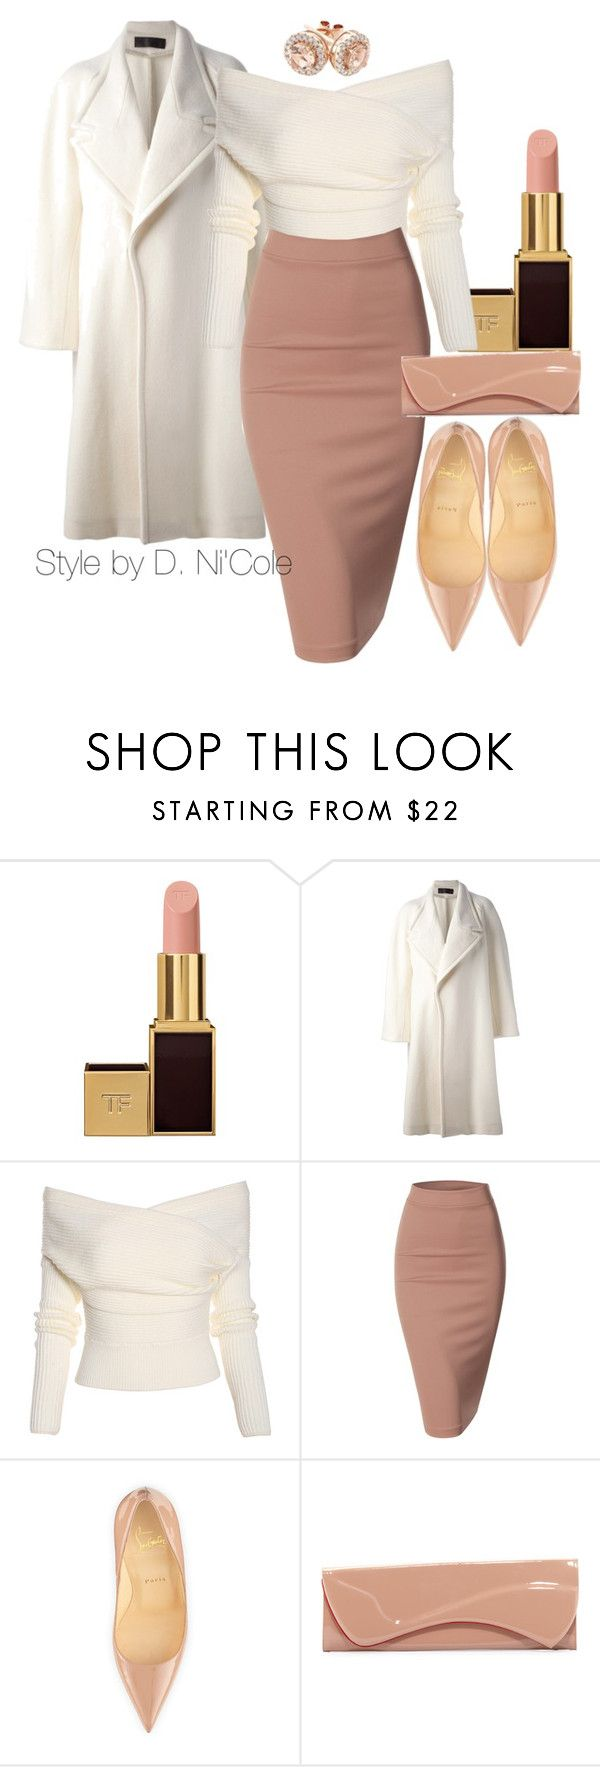 """Untitled #1955"" by stylebydnicole ❤ liked on Polyvore featuring Tom Ford, Haider Ackermann, Doublju, Christian Louboutin and Reeds Jewelers"